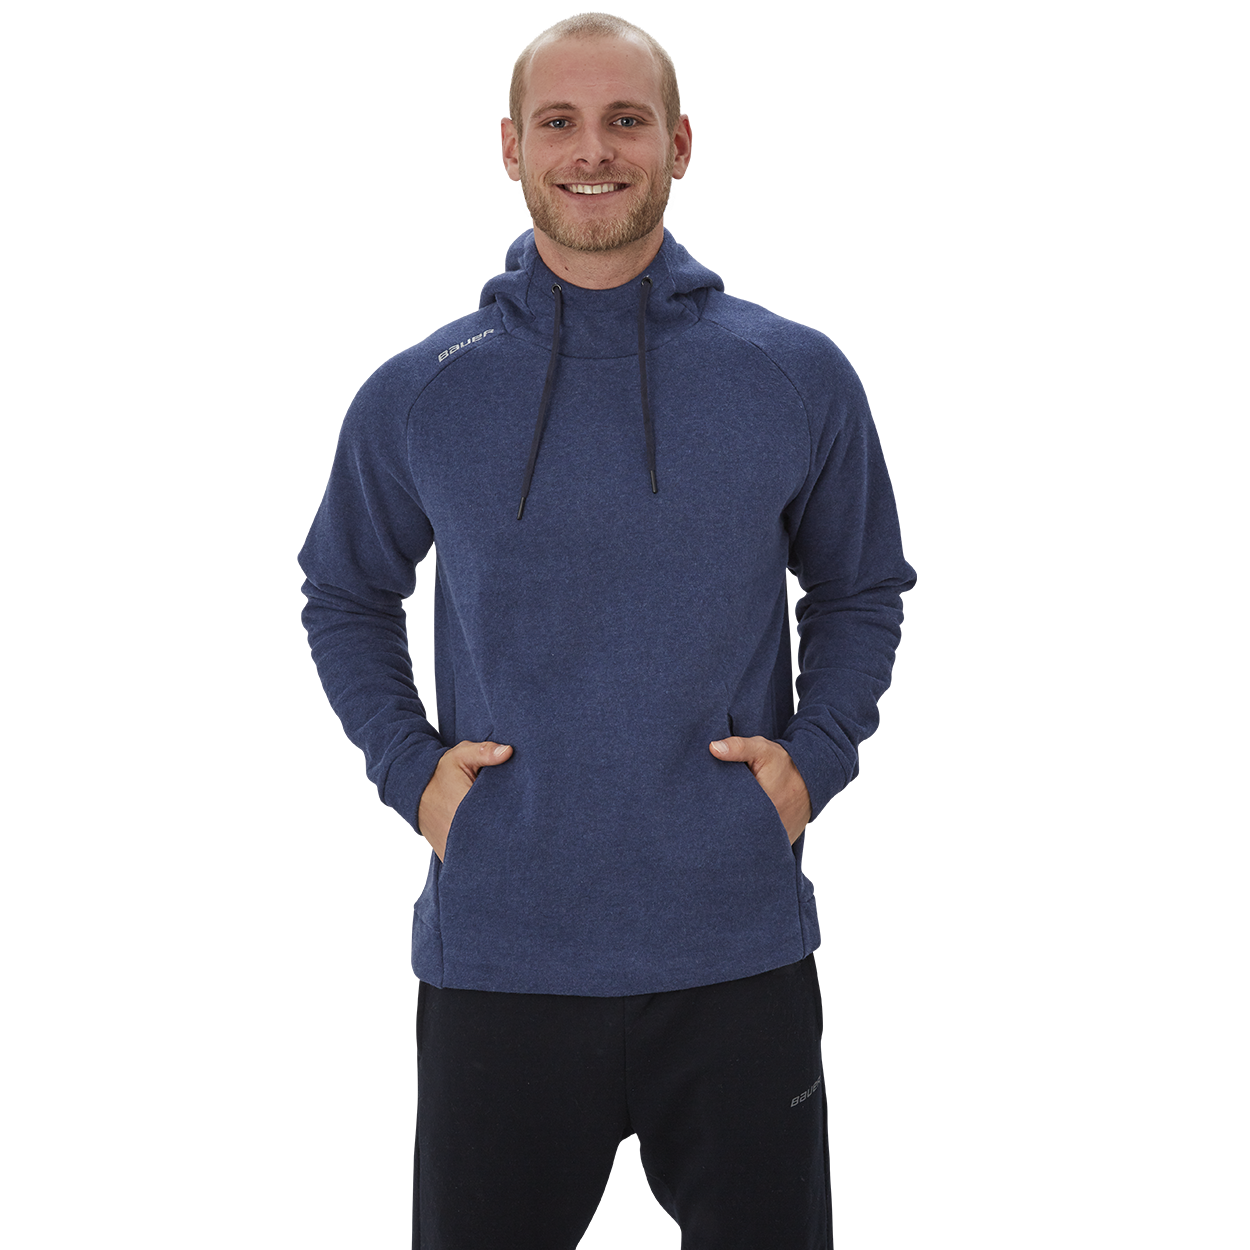 Bauer Perfect Hoodie,Navy,medium